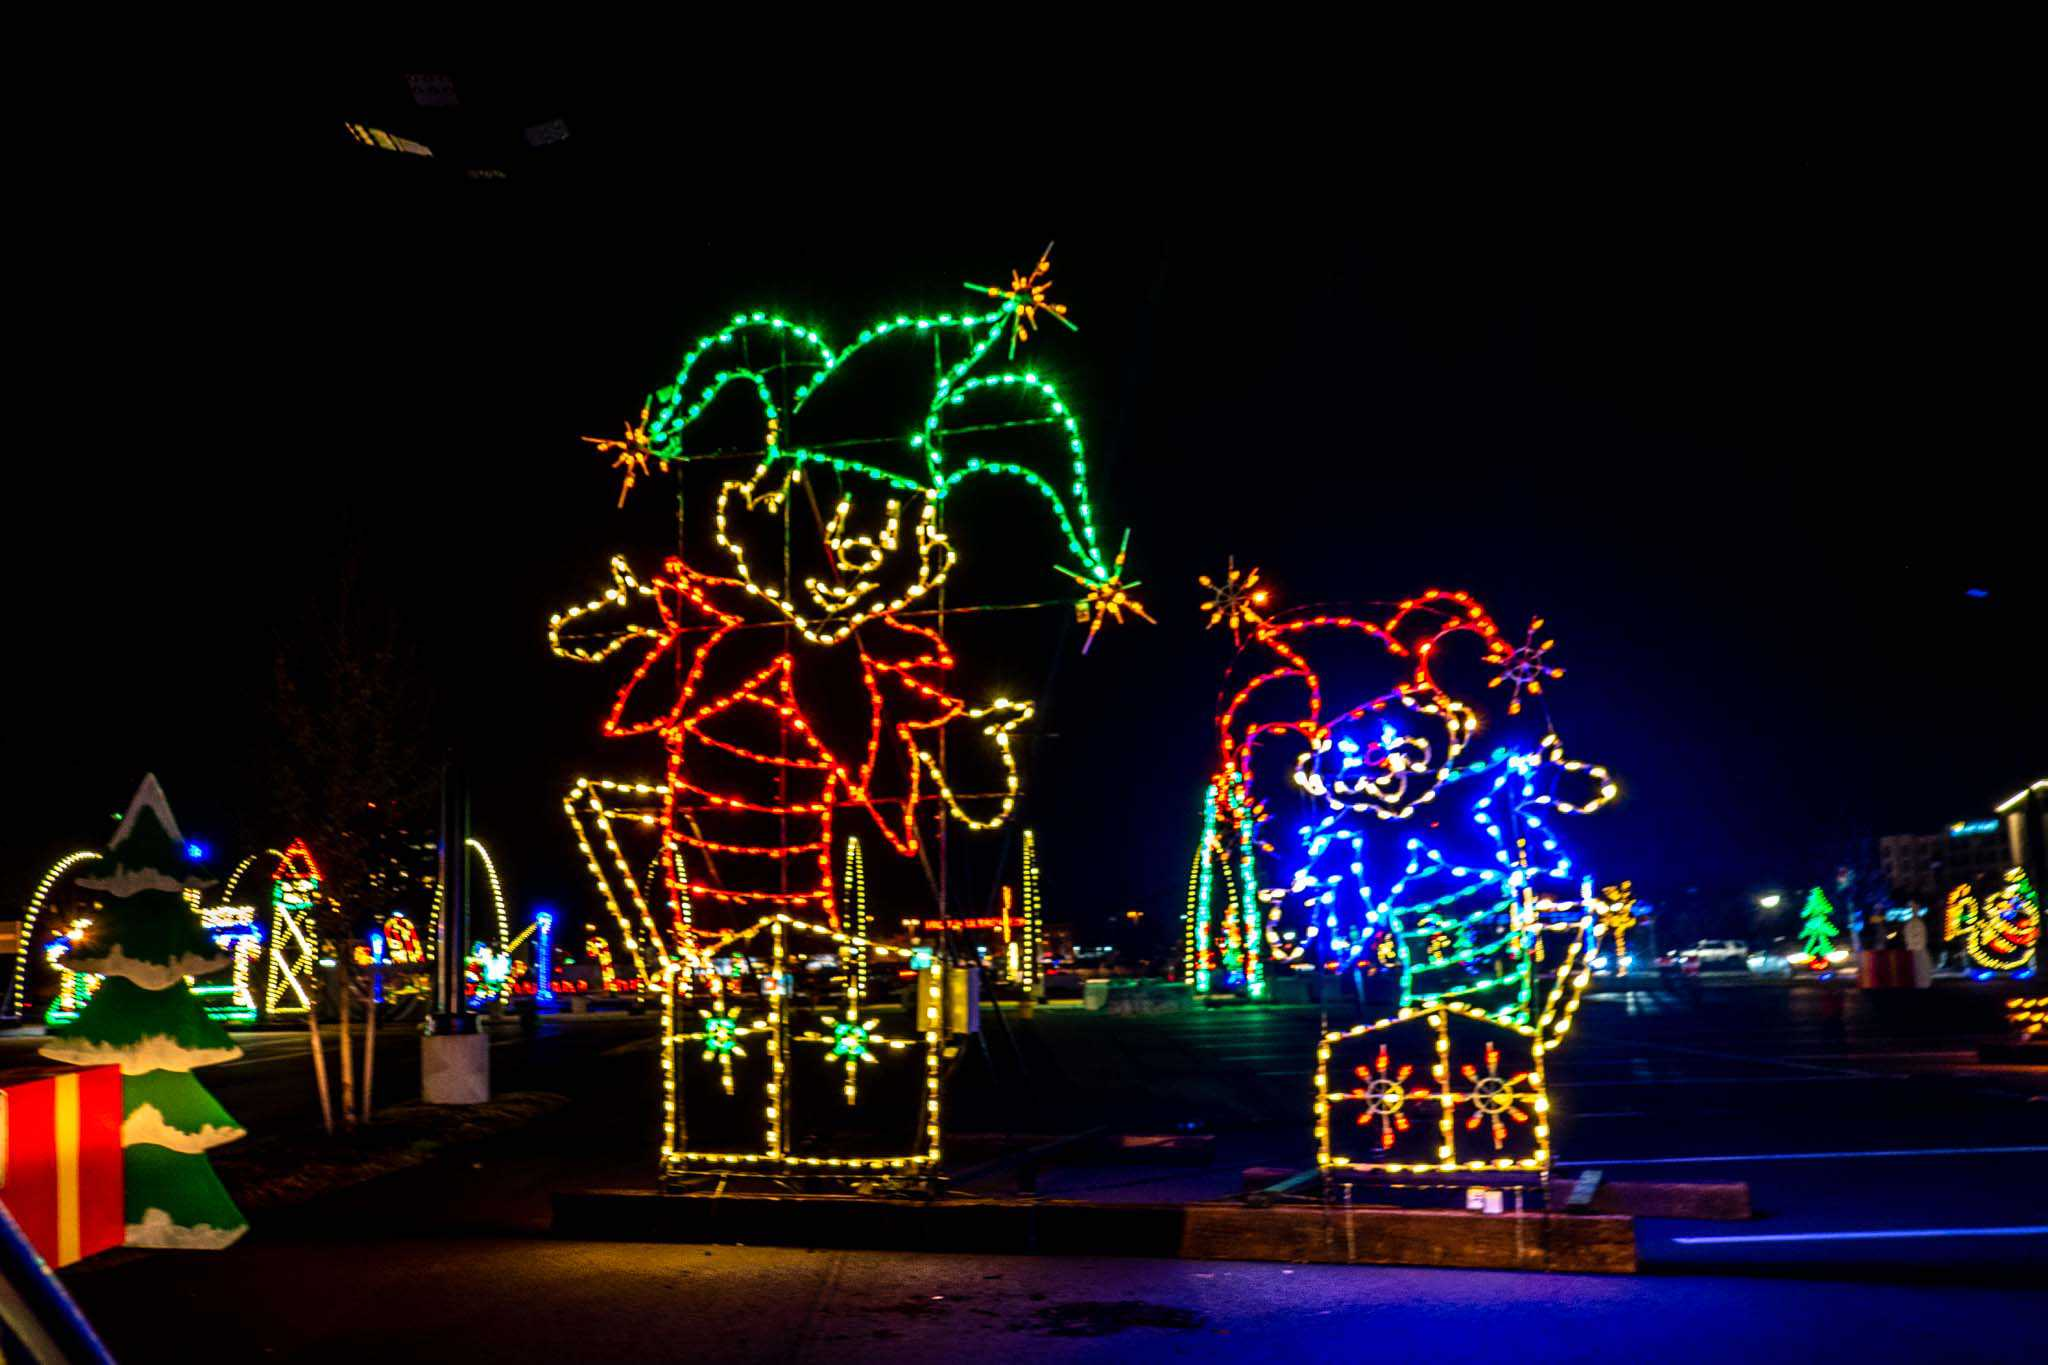 Jack-in-the-box light display